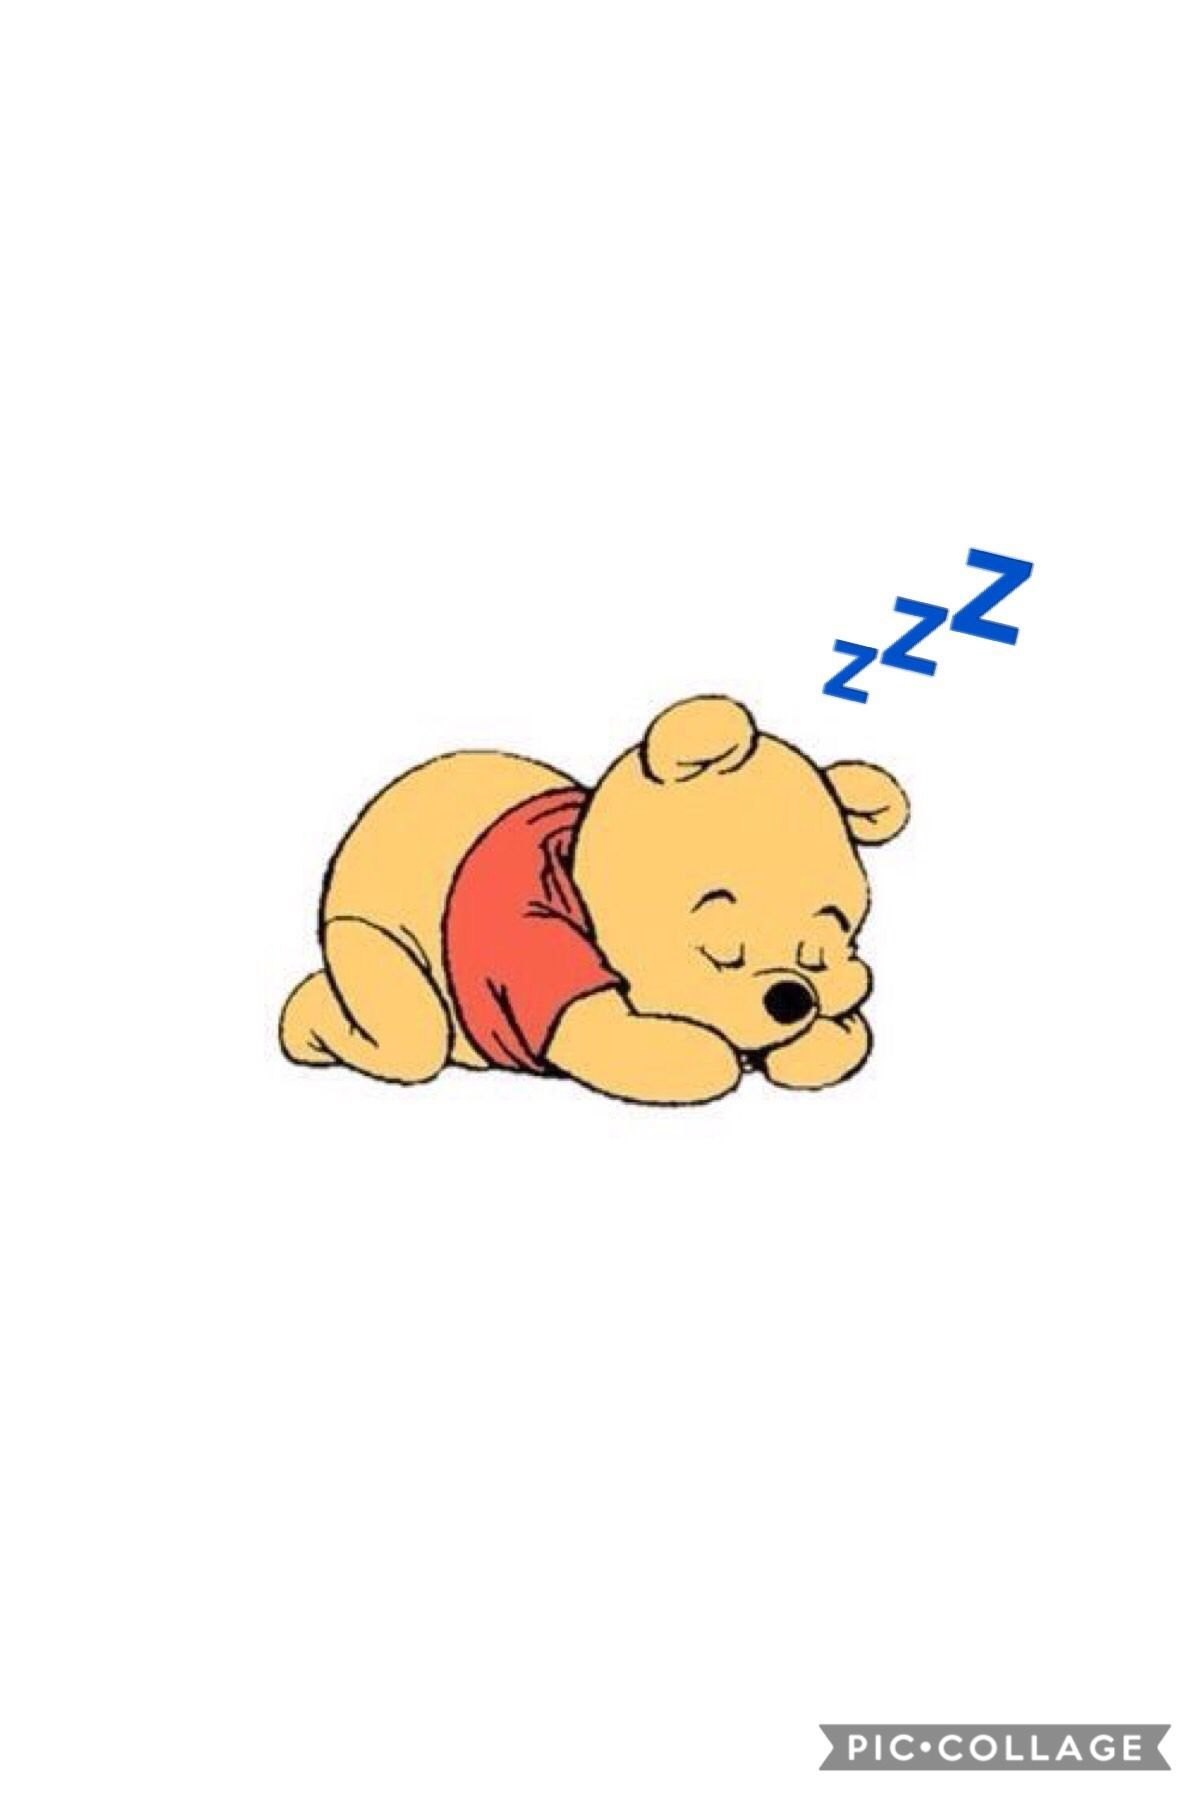 Winniethepooh Zzz Sleep In 2019 Disney Wallpaper Intended For The Most Winnie The Pooh Sleeping Wallpaper Di 2020 Wallpaper Disney Kartun Gambar Lucu